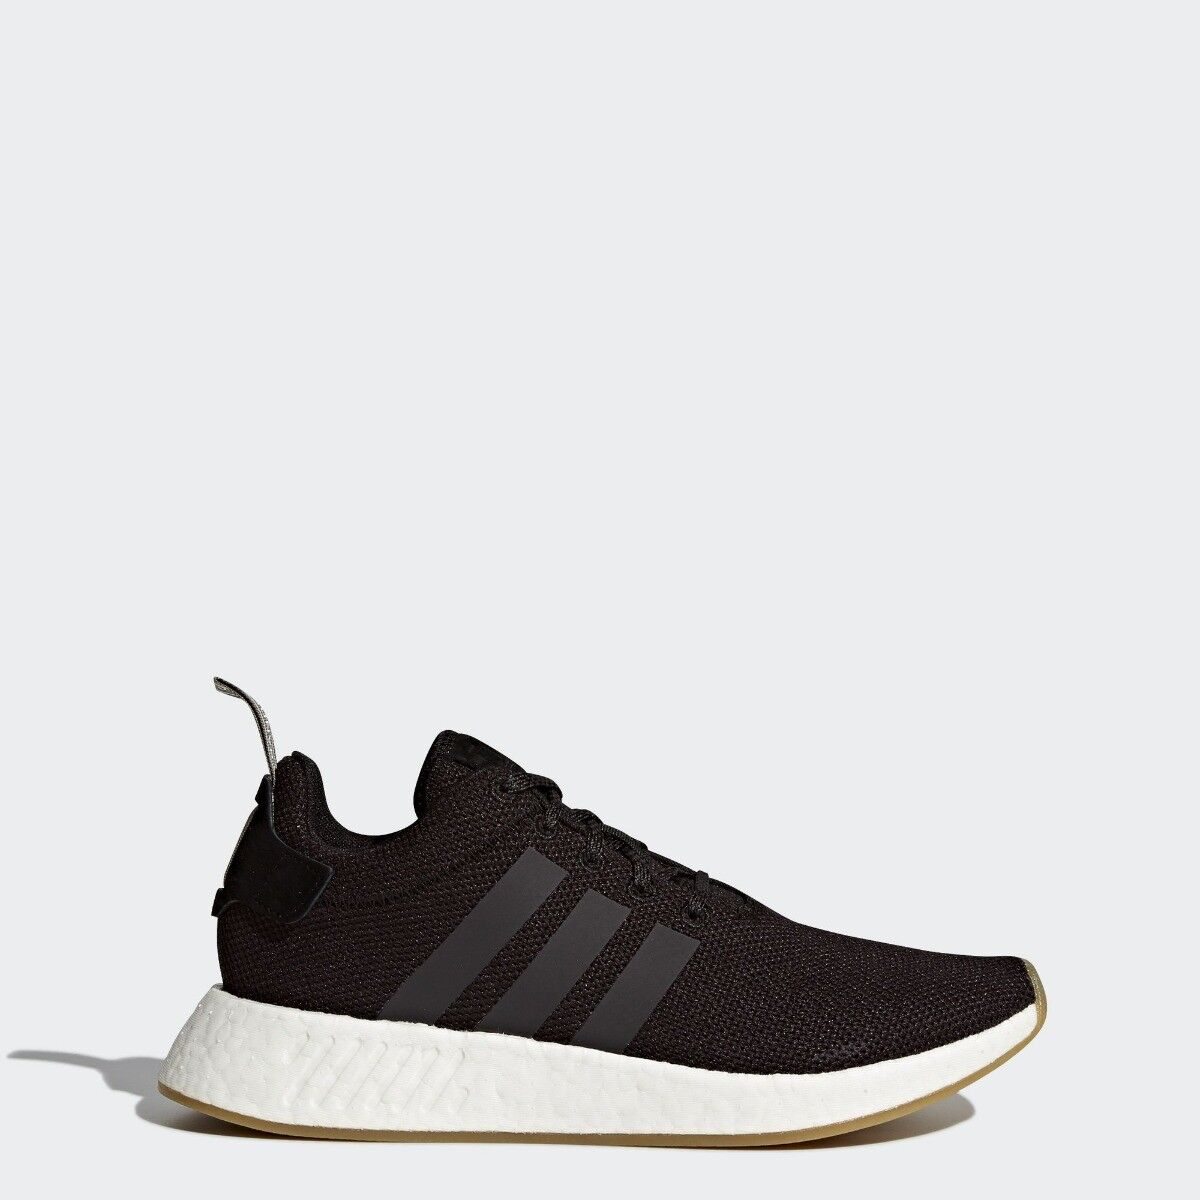 adidas ORIGINALS NMD_R2 MENS TRAINERS RUNNING SHOES SIZE 6.5 - 11.5 RRP £110/-